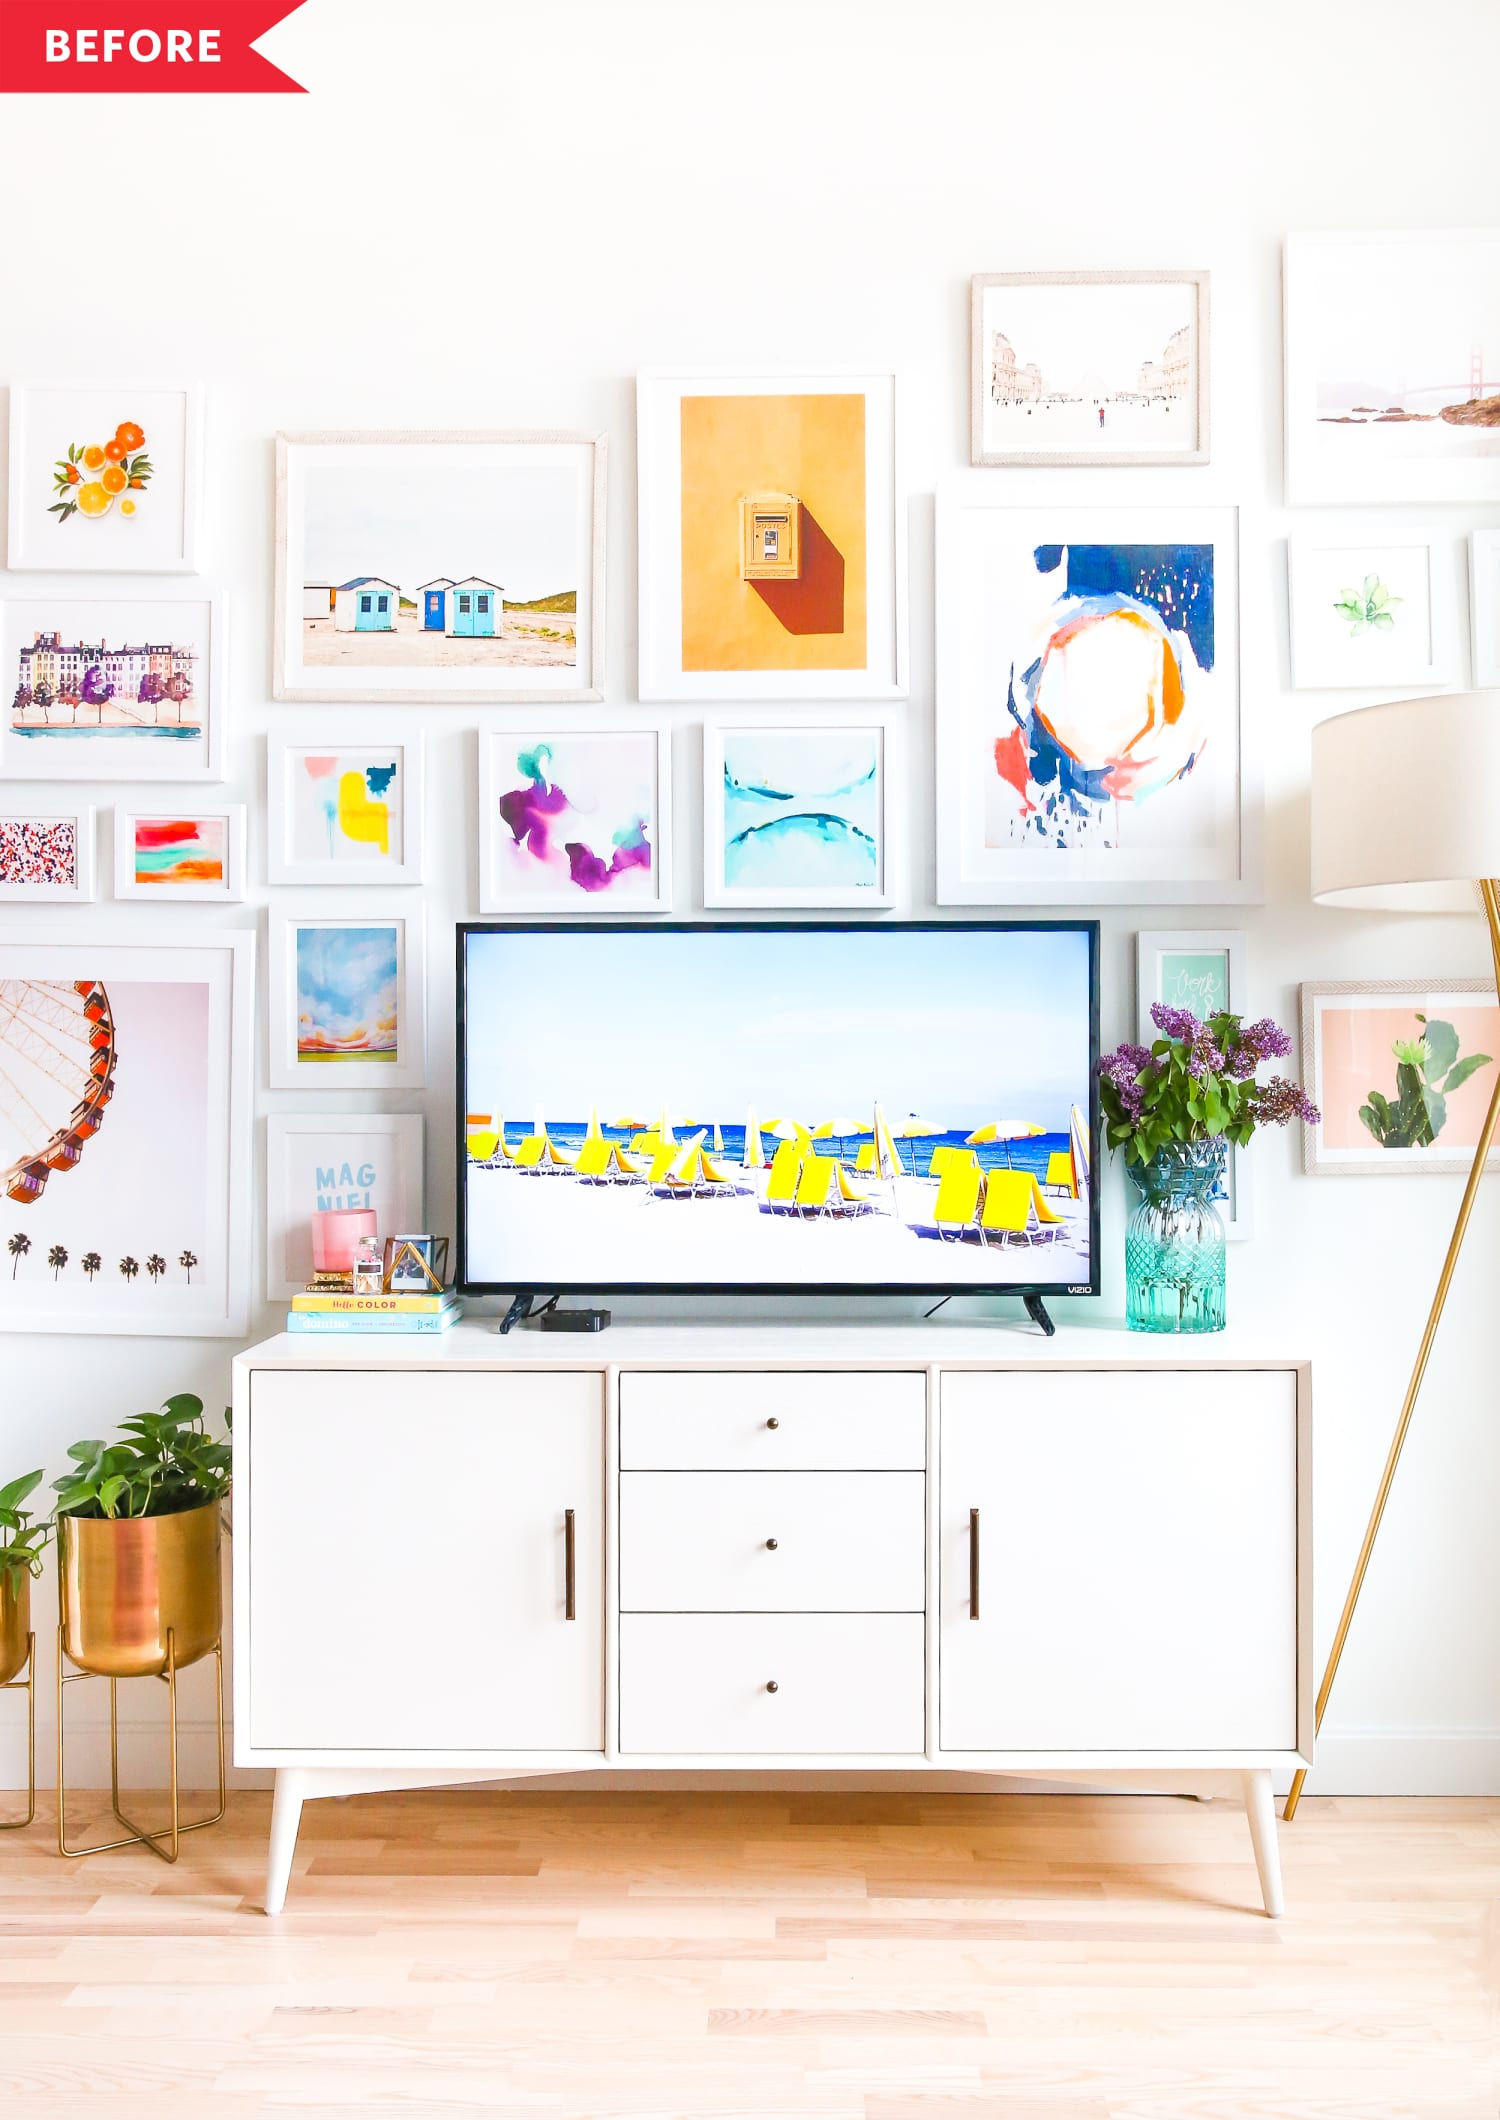 Before and After: A Genius Holiday-Ready Gallery Wall Redo for Just $40